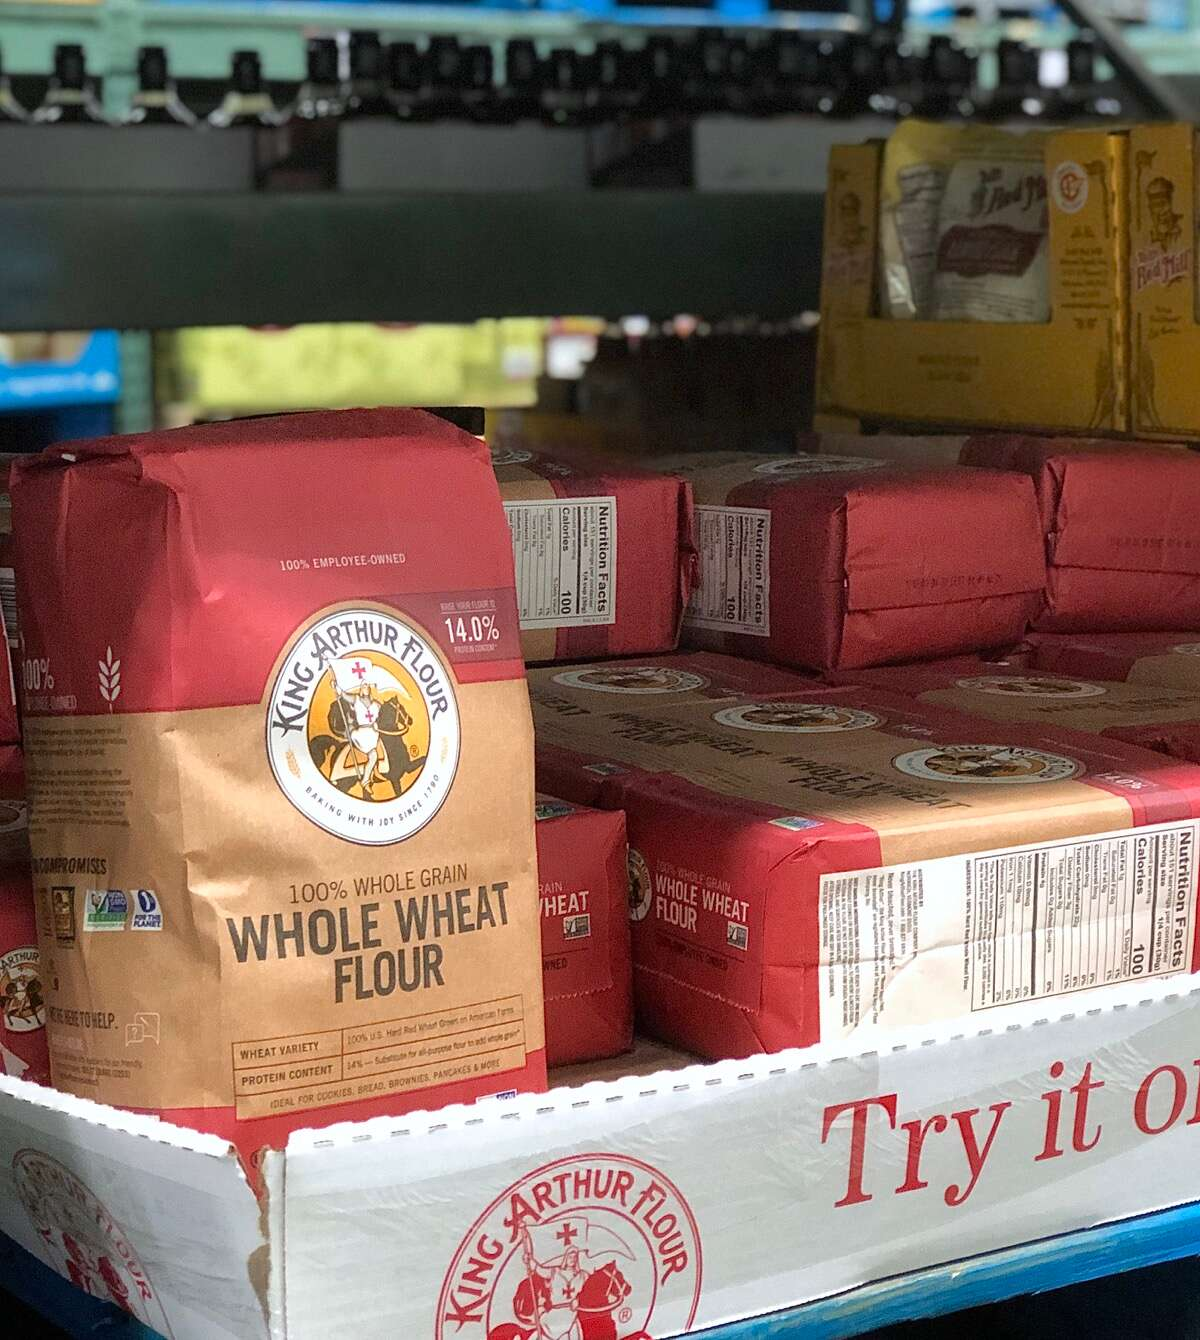 Bag of King Arthur Premium Whole Wheat Flour on the shelf of a warehouse store.